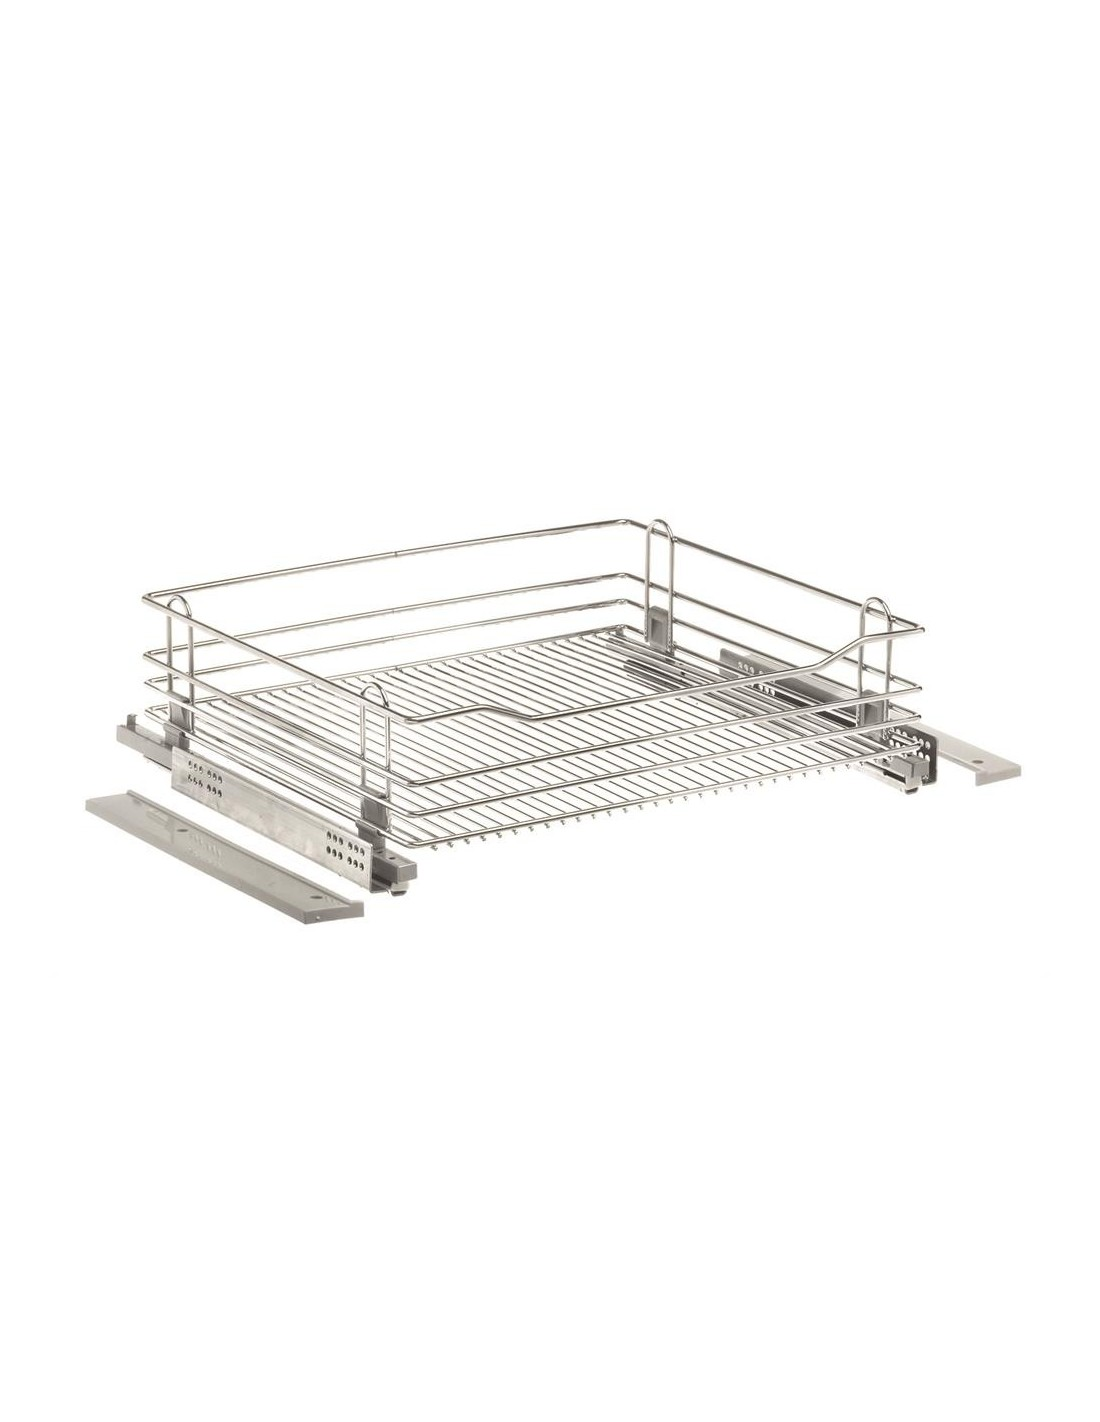 Pull Out Basket 54023202 Pull Out Baskets Chrome Linear Wire For Kitchen